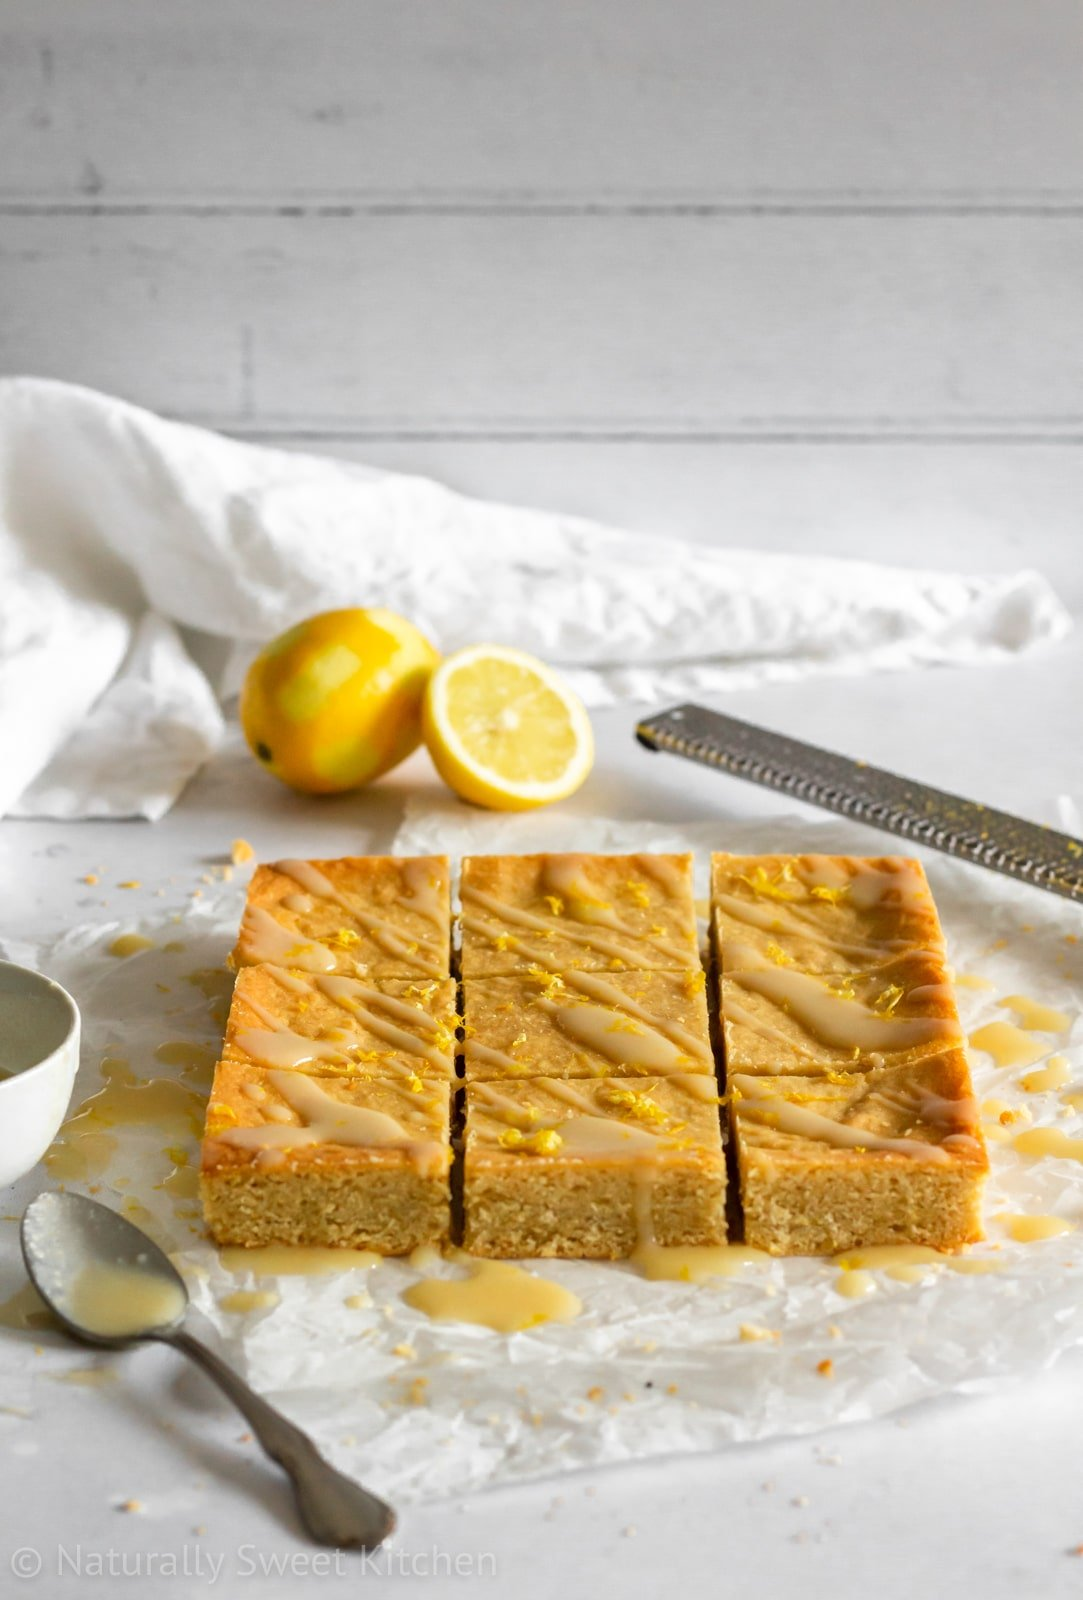 Honey and Lemon Shortbread Bars made without sugar.